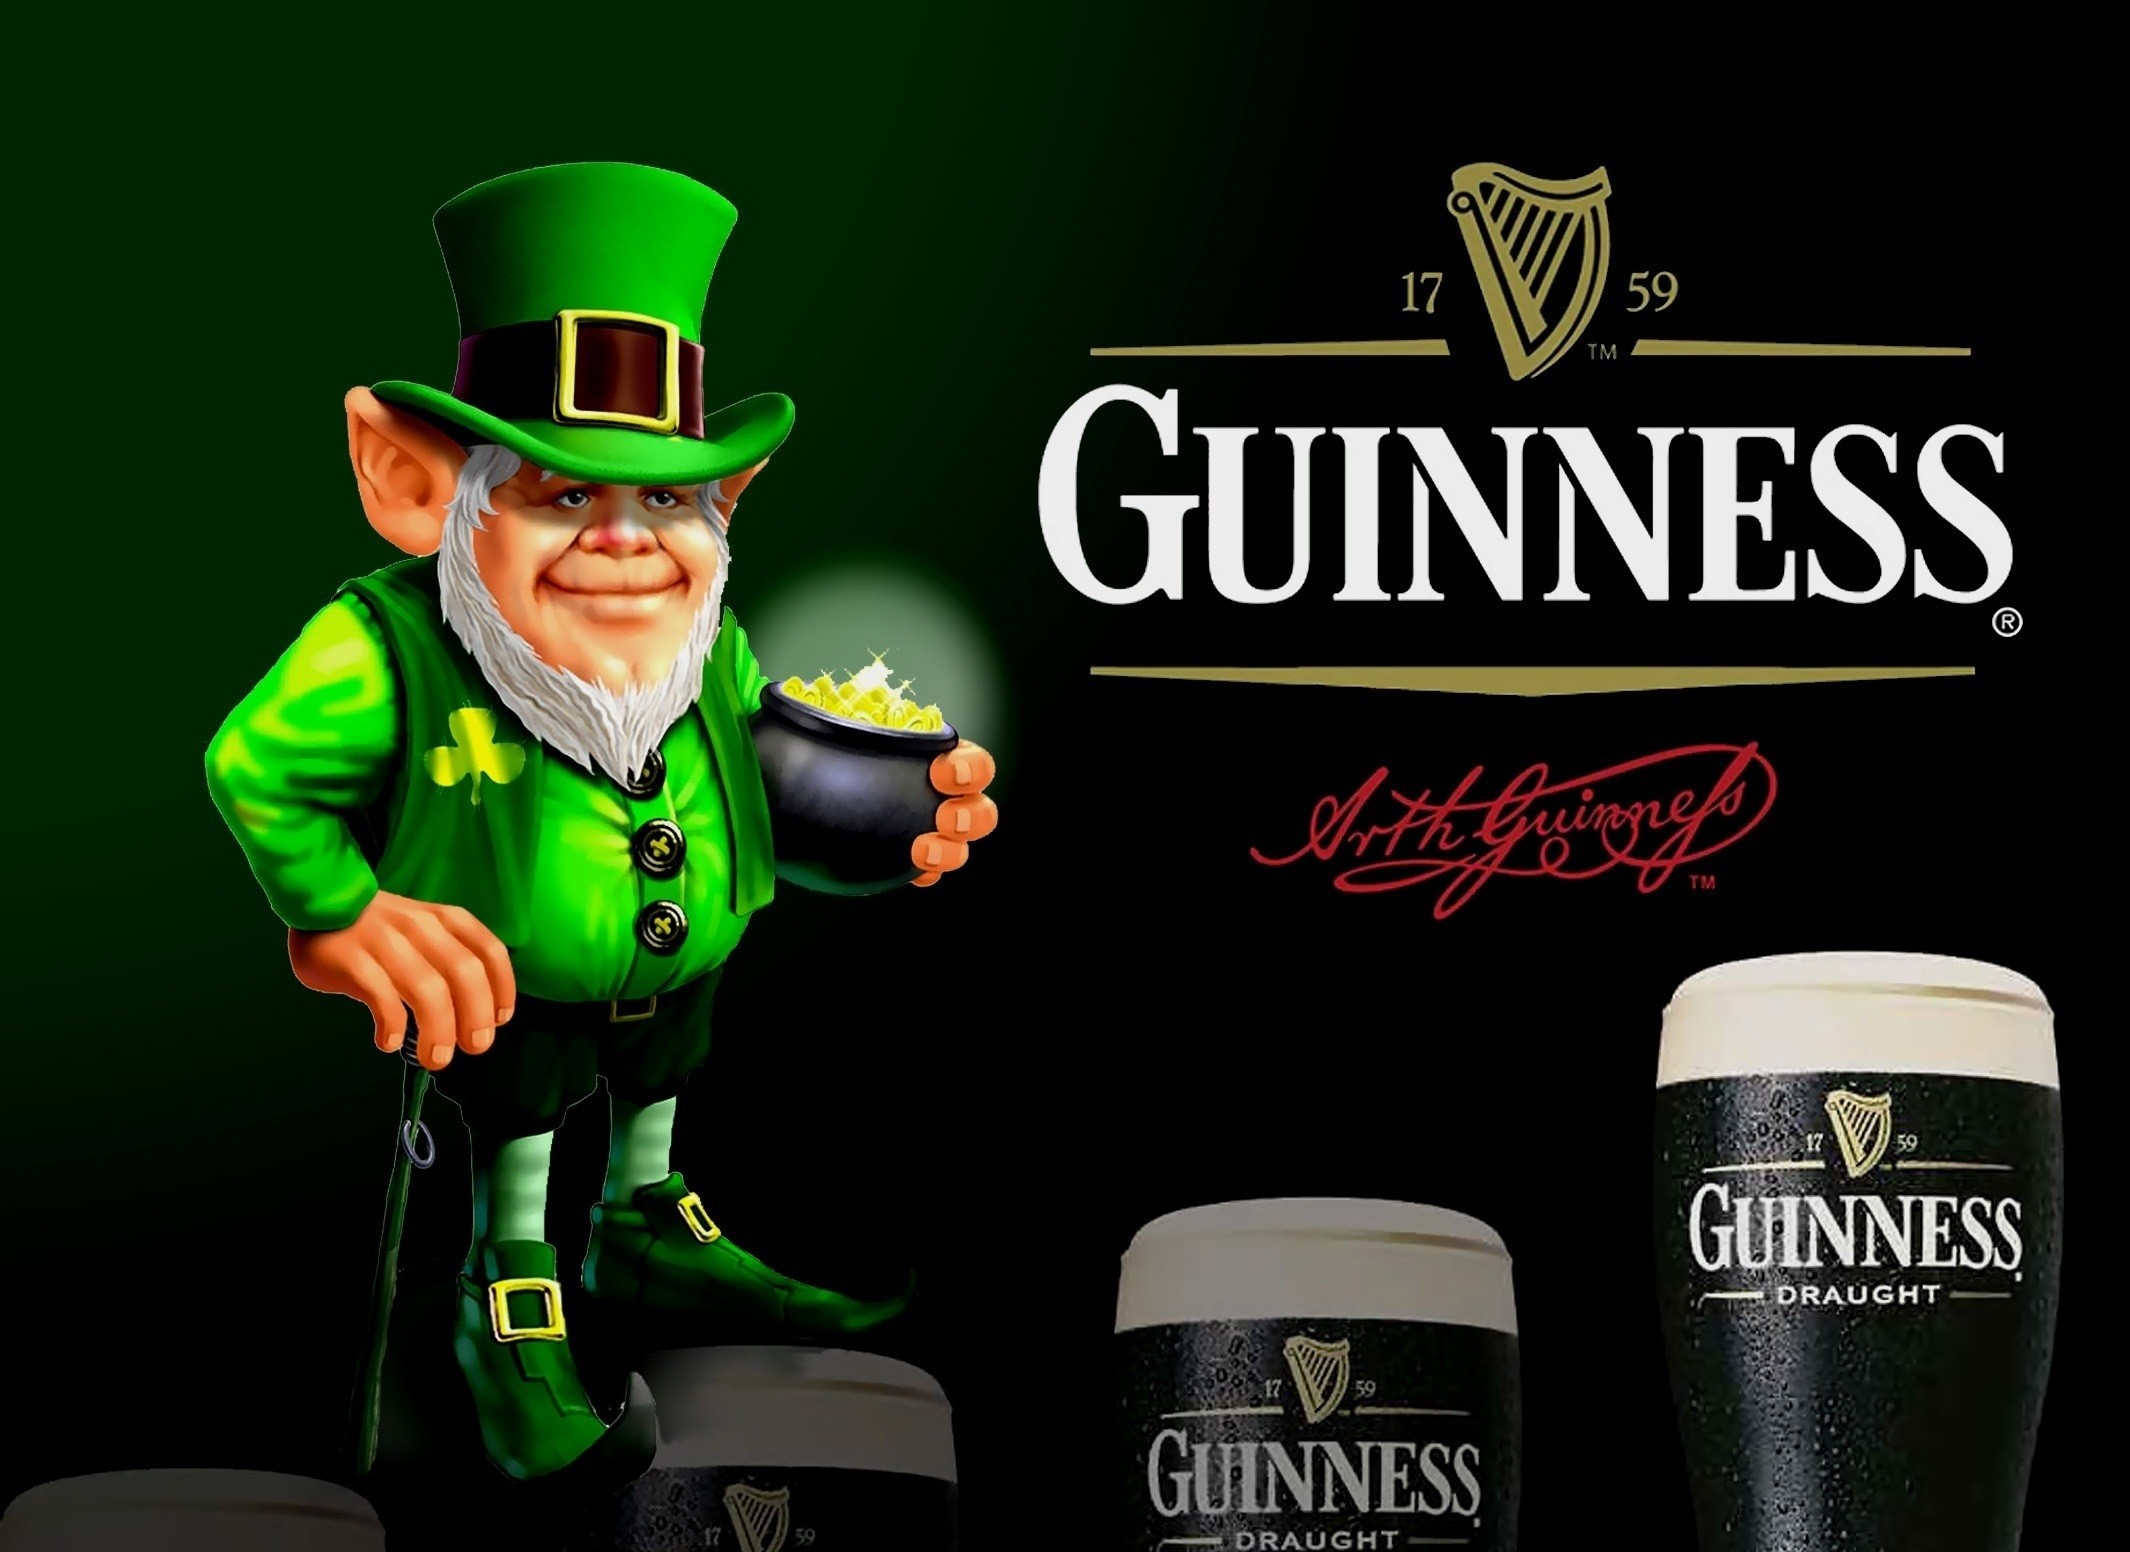 Res: 2130x1552, Guinness Wallpapers 12 - 2130 X 1552